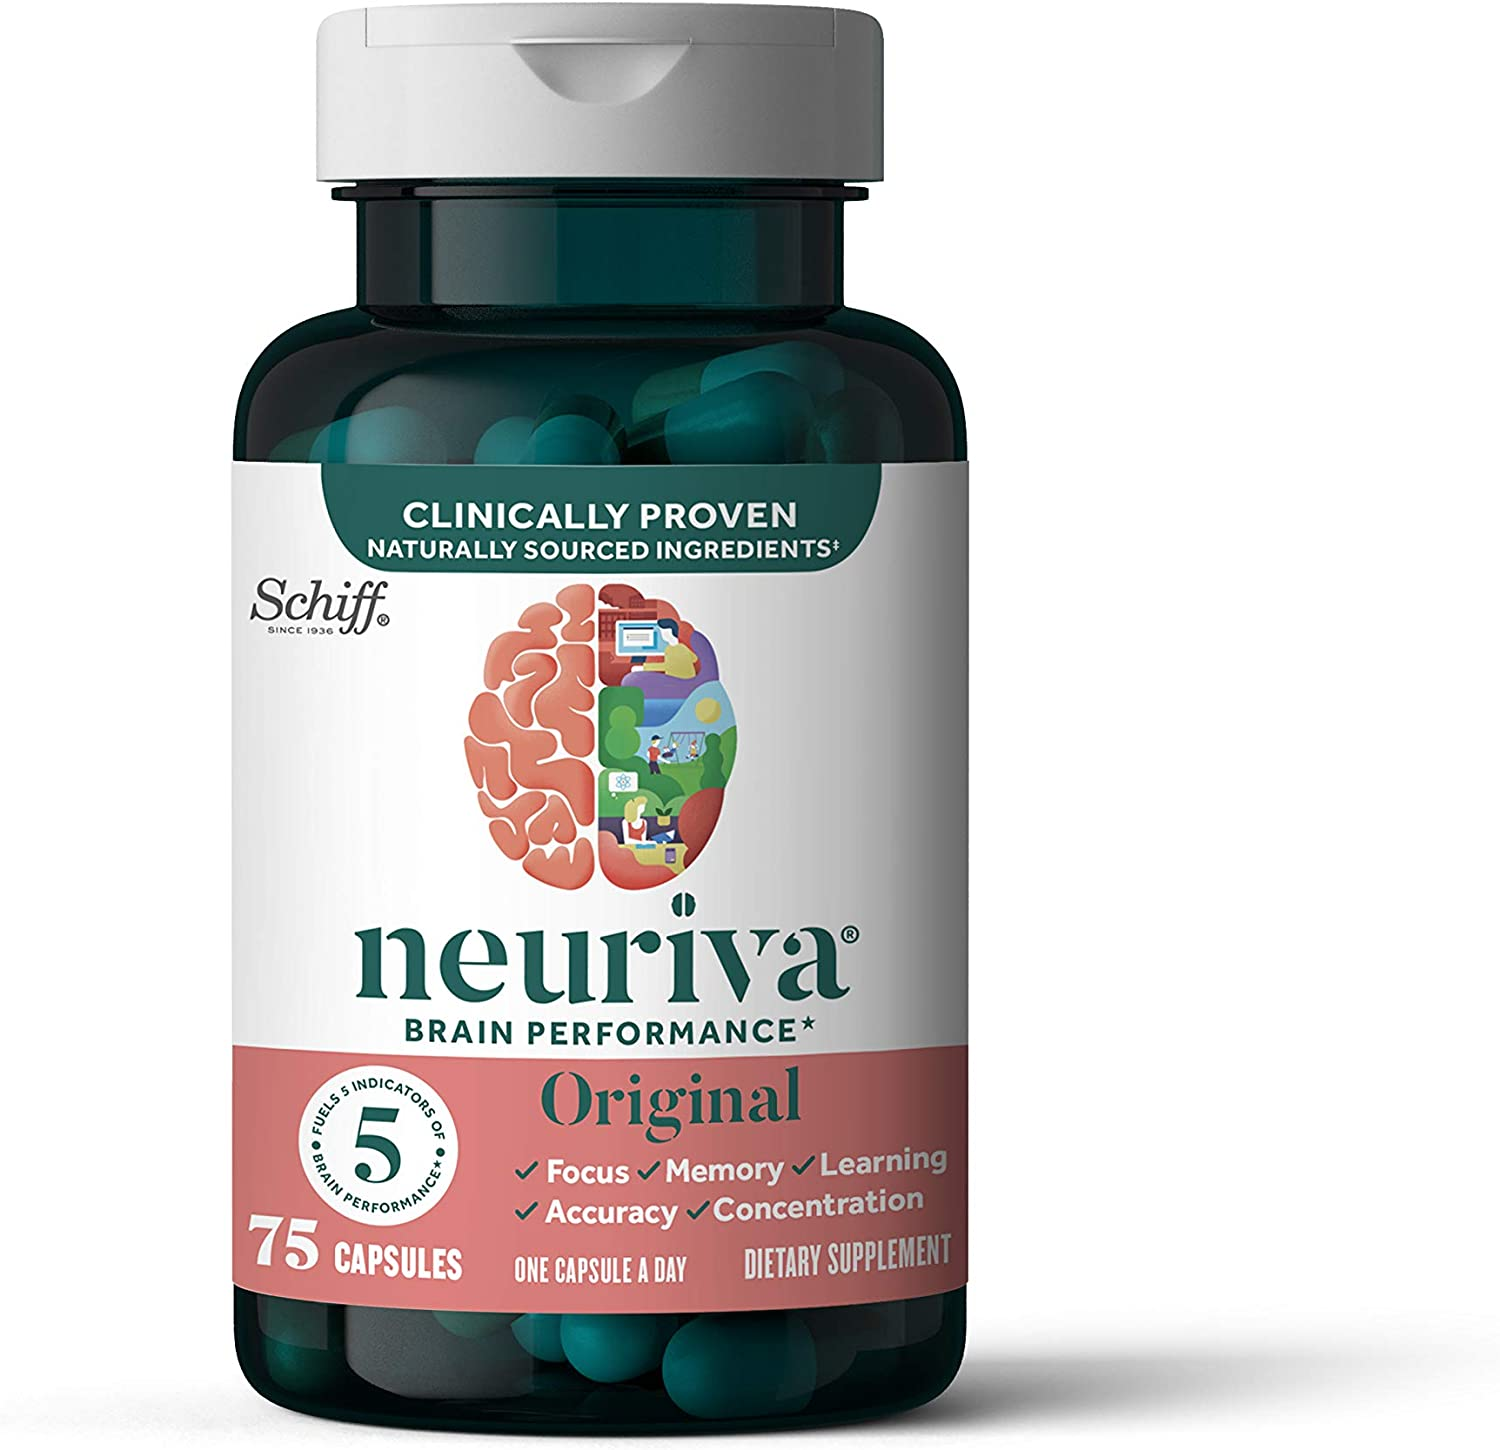 Nootropic Brain Support Supplement - NEURIVA Original Capsules (75 count in a bottle) Phosphatidylserine, Gluten Free, Decaffeinated - Supports Focus, Memory, Learning, Accuracy & Concentration